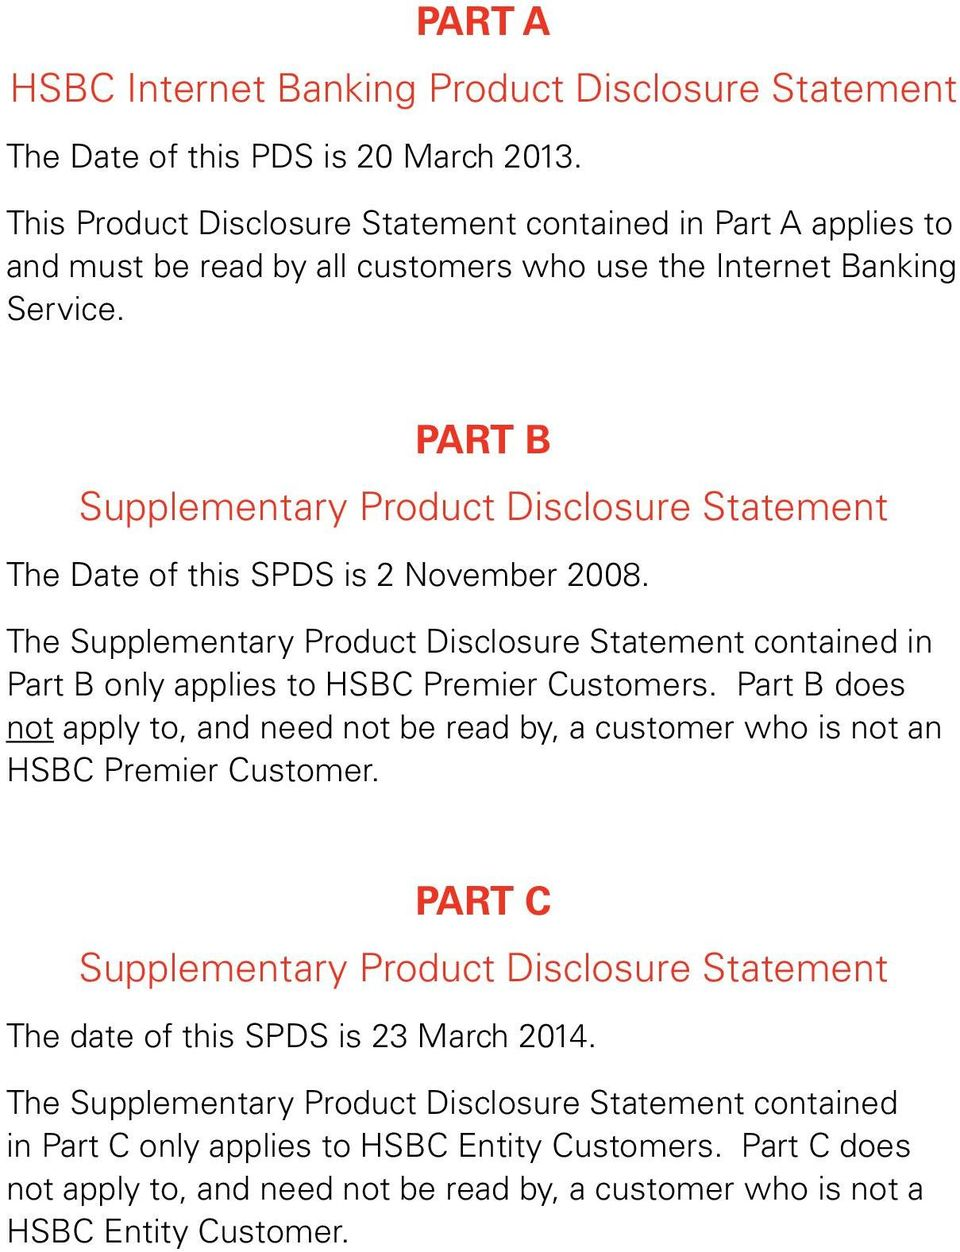 PART B Spplementary Prodct Disclosre Statement The Date of this SPDS is 2 November 2008. The Spplementary Prodct Disclosre Statement contained in Part B only applies to HSBC Premier Cstomers.